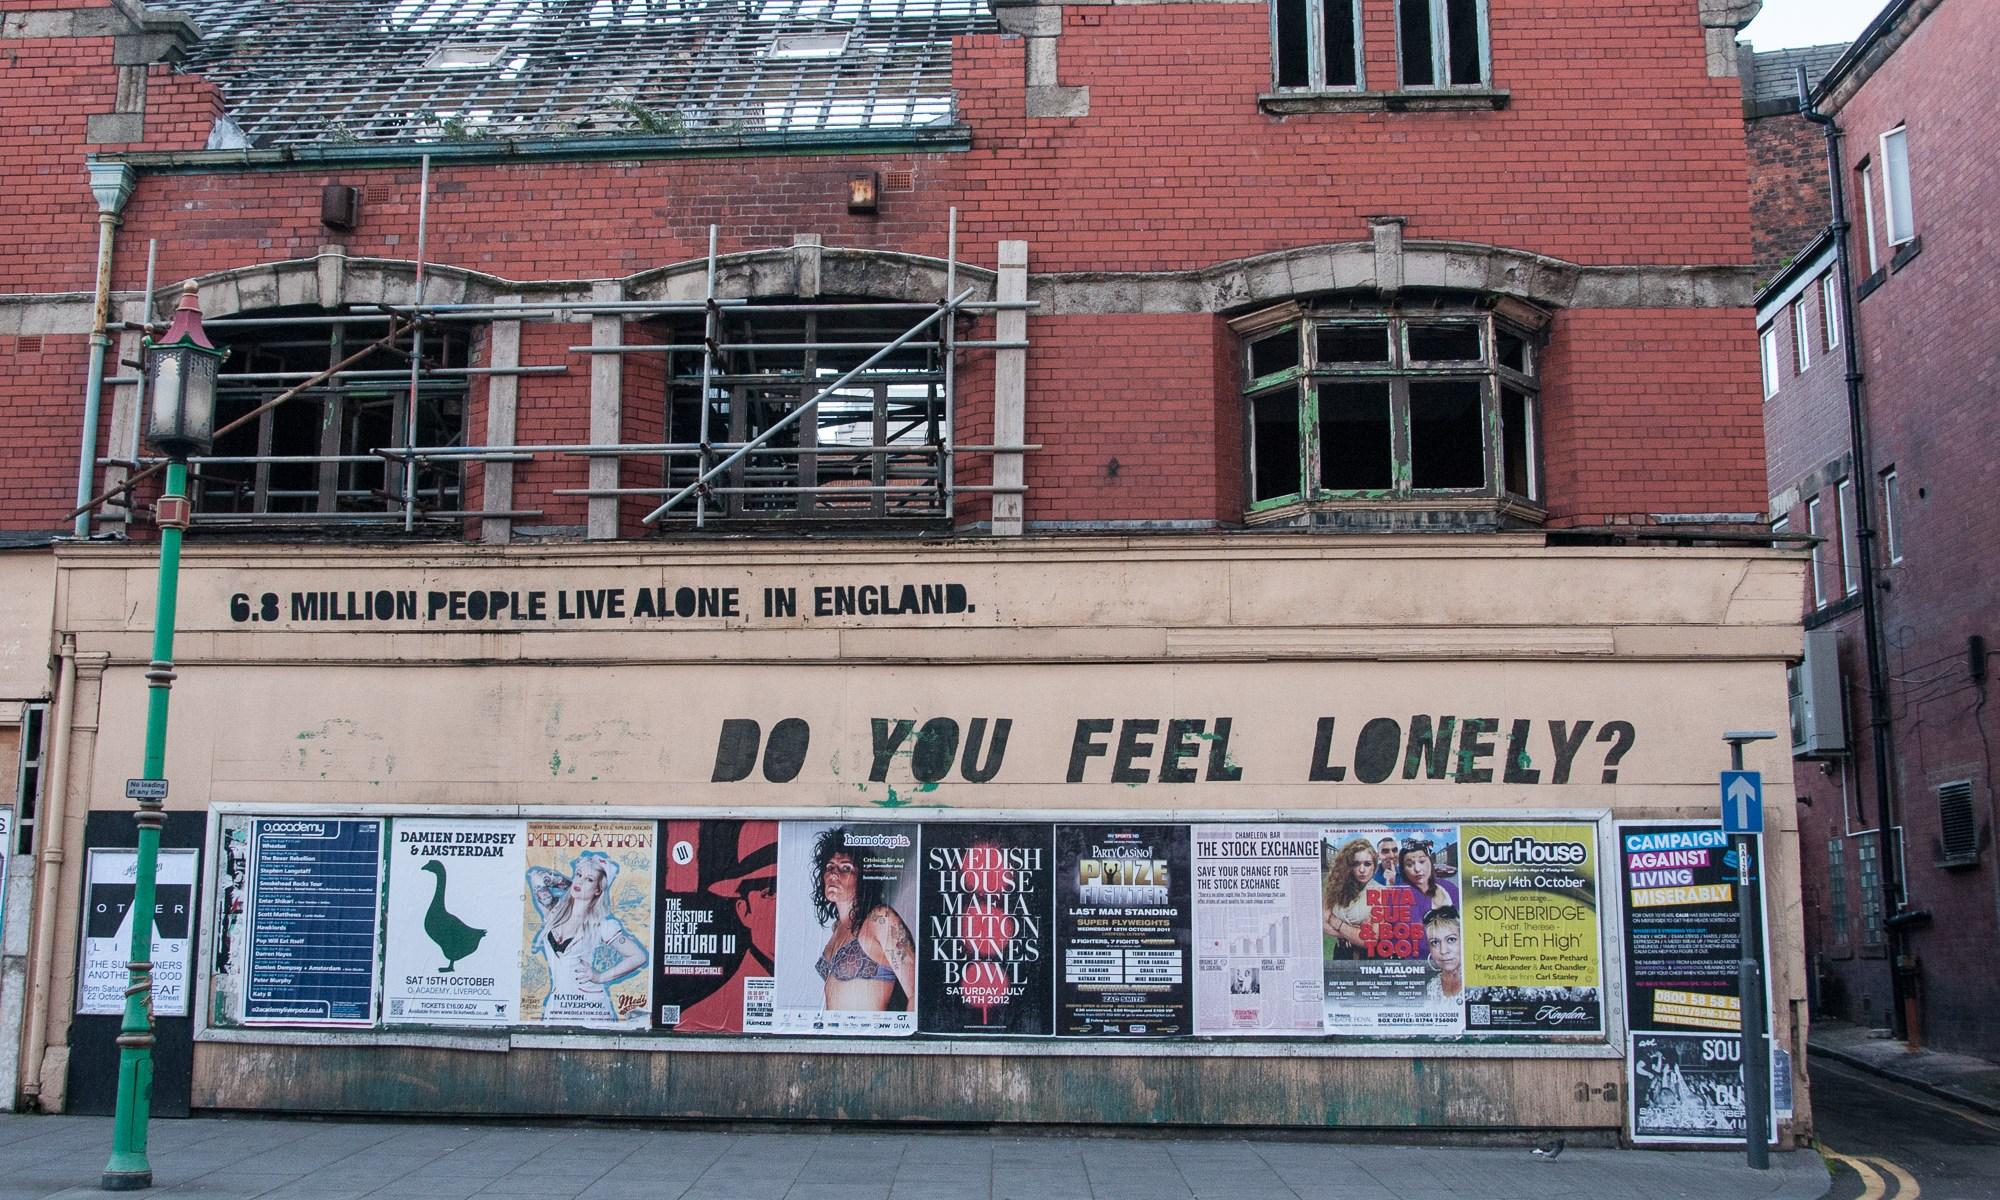 Do you feel lonely?